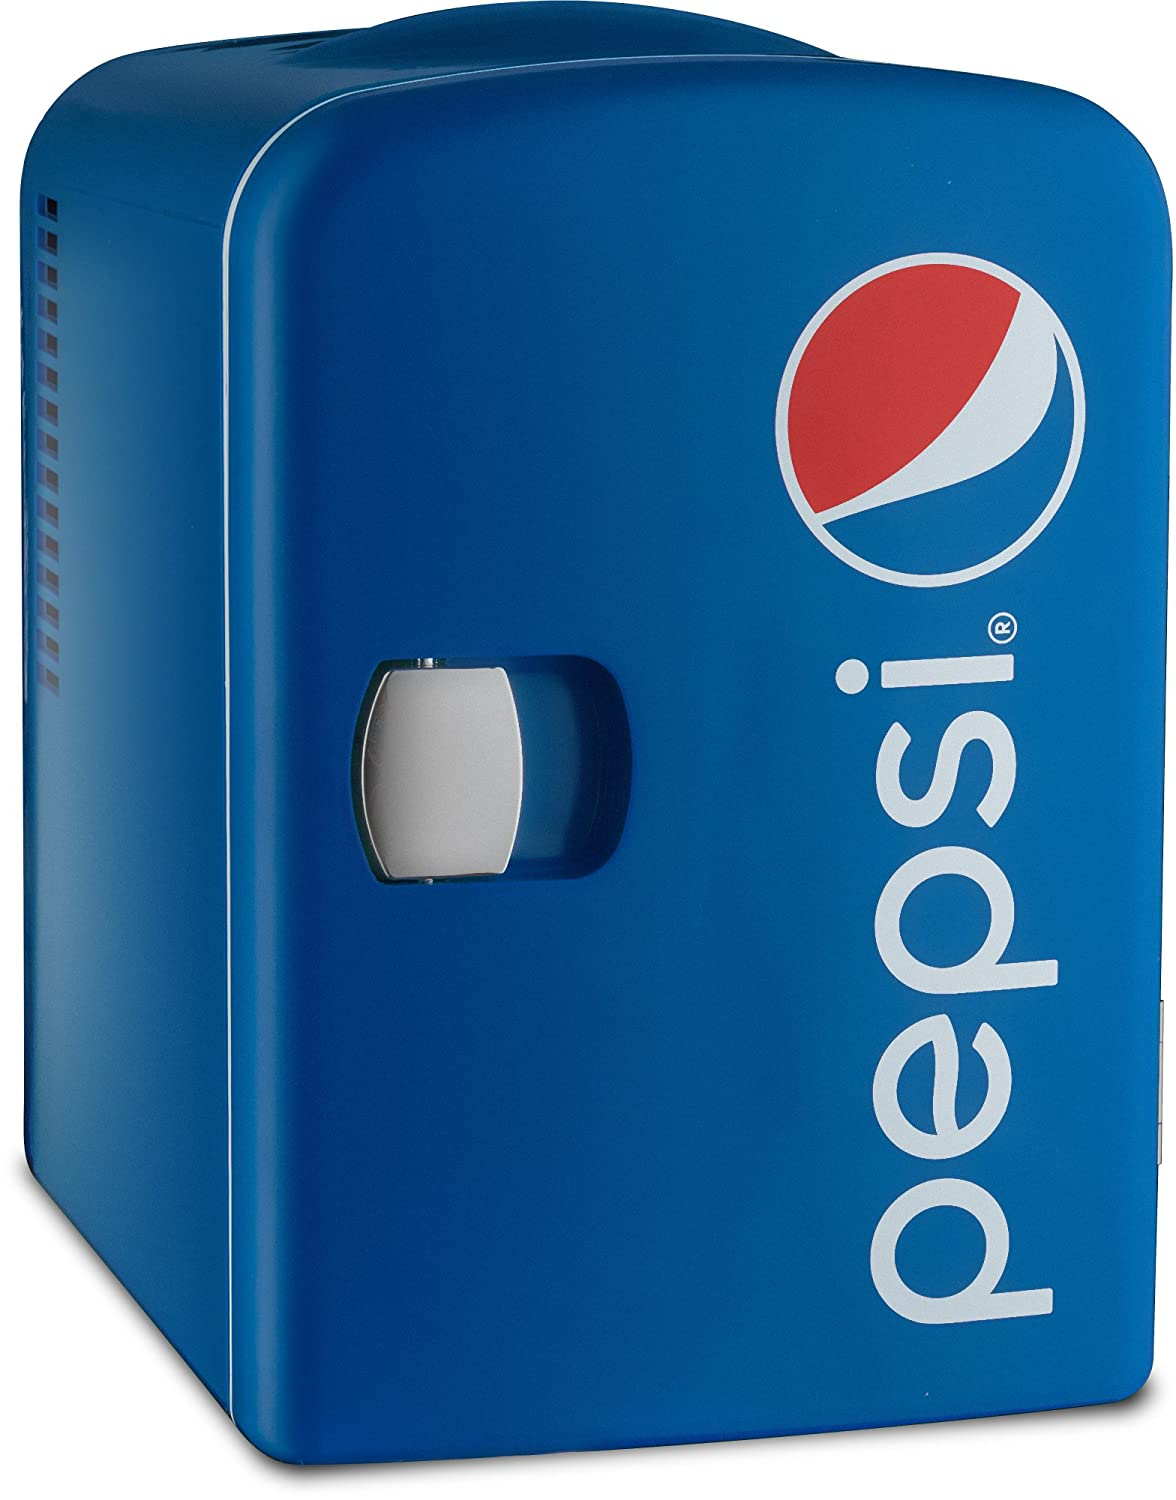 Gourmia GMF660 Pepsi Thermoelectric Mini Fridge Cooler and Warmer - 4 Liter/ 6 Can - For Home,Office, Car, Dorm or Boat - Compact & Portable - AC & DC Power Cords - Blue